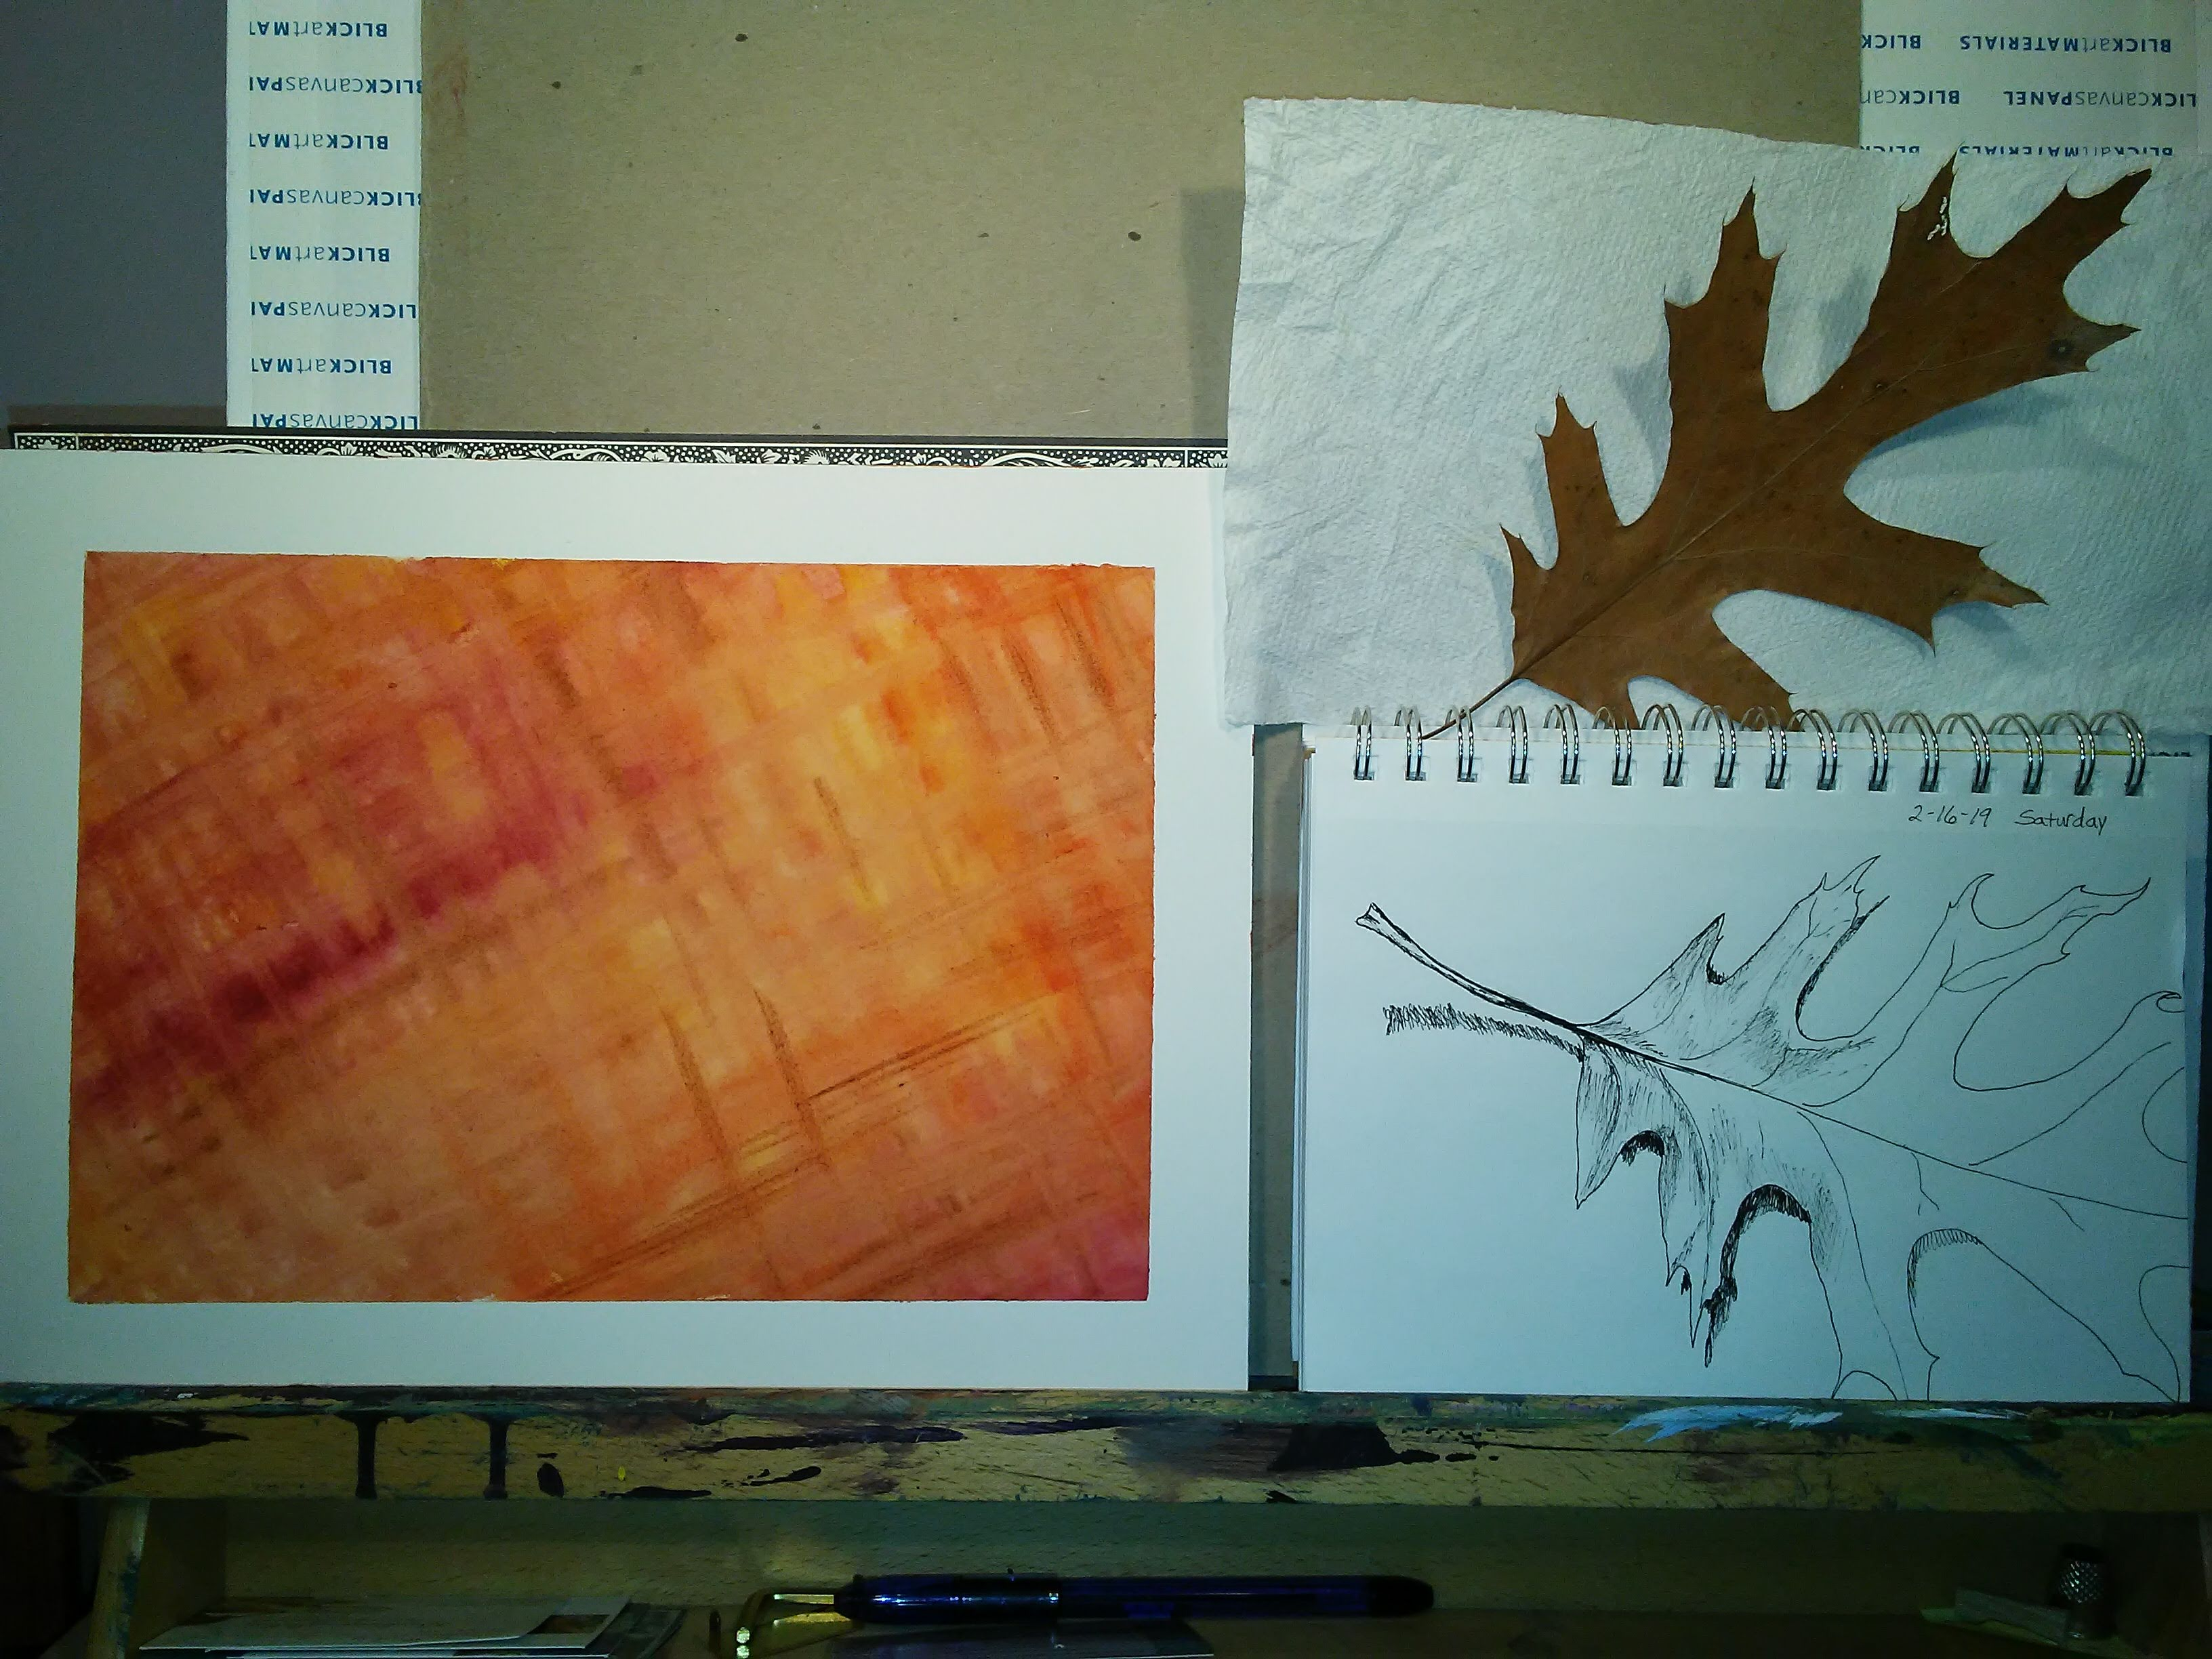 leaf, sketch, and orange painting on an easel